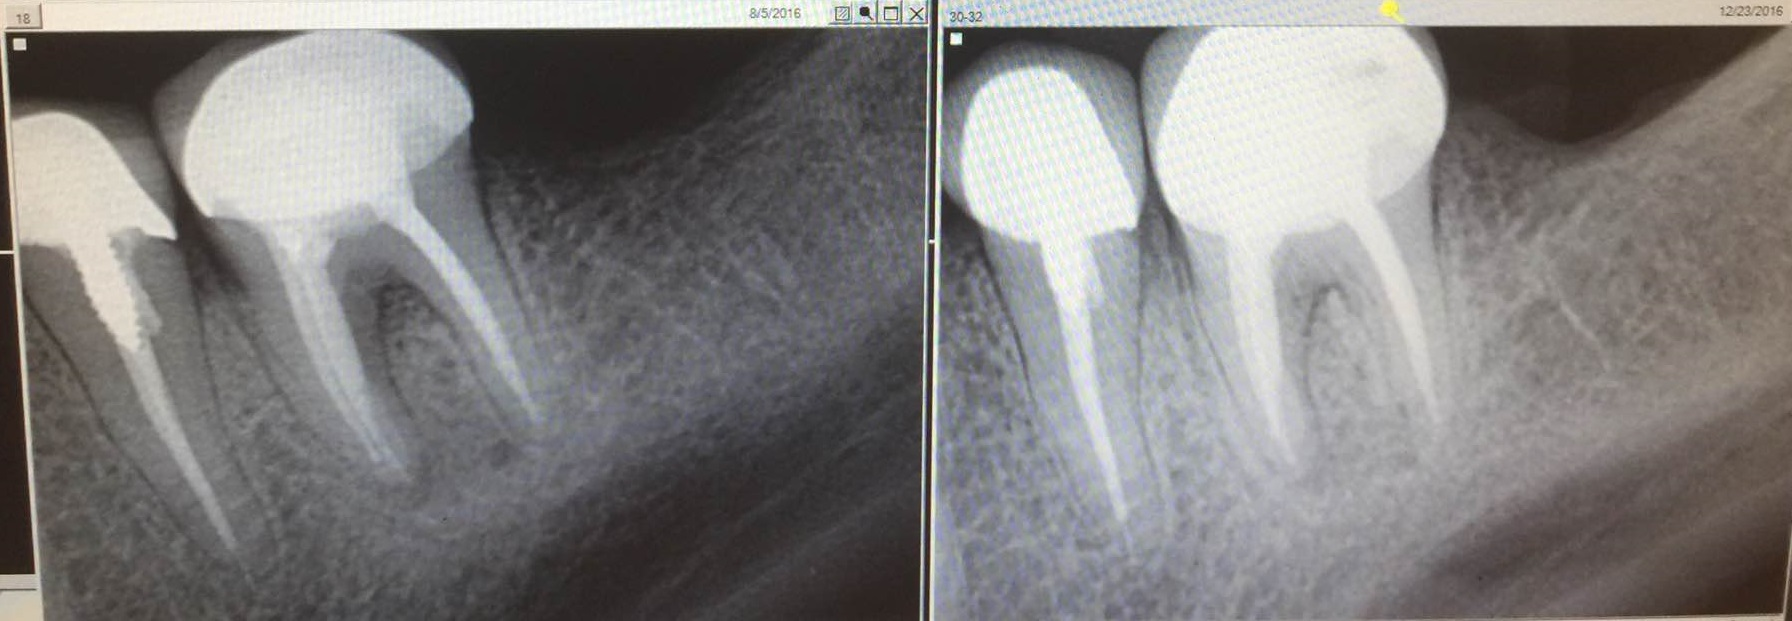 west covina root canal